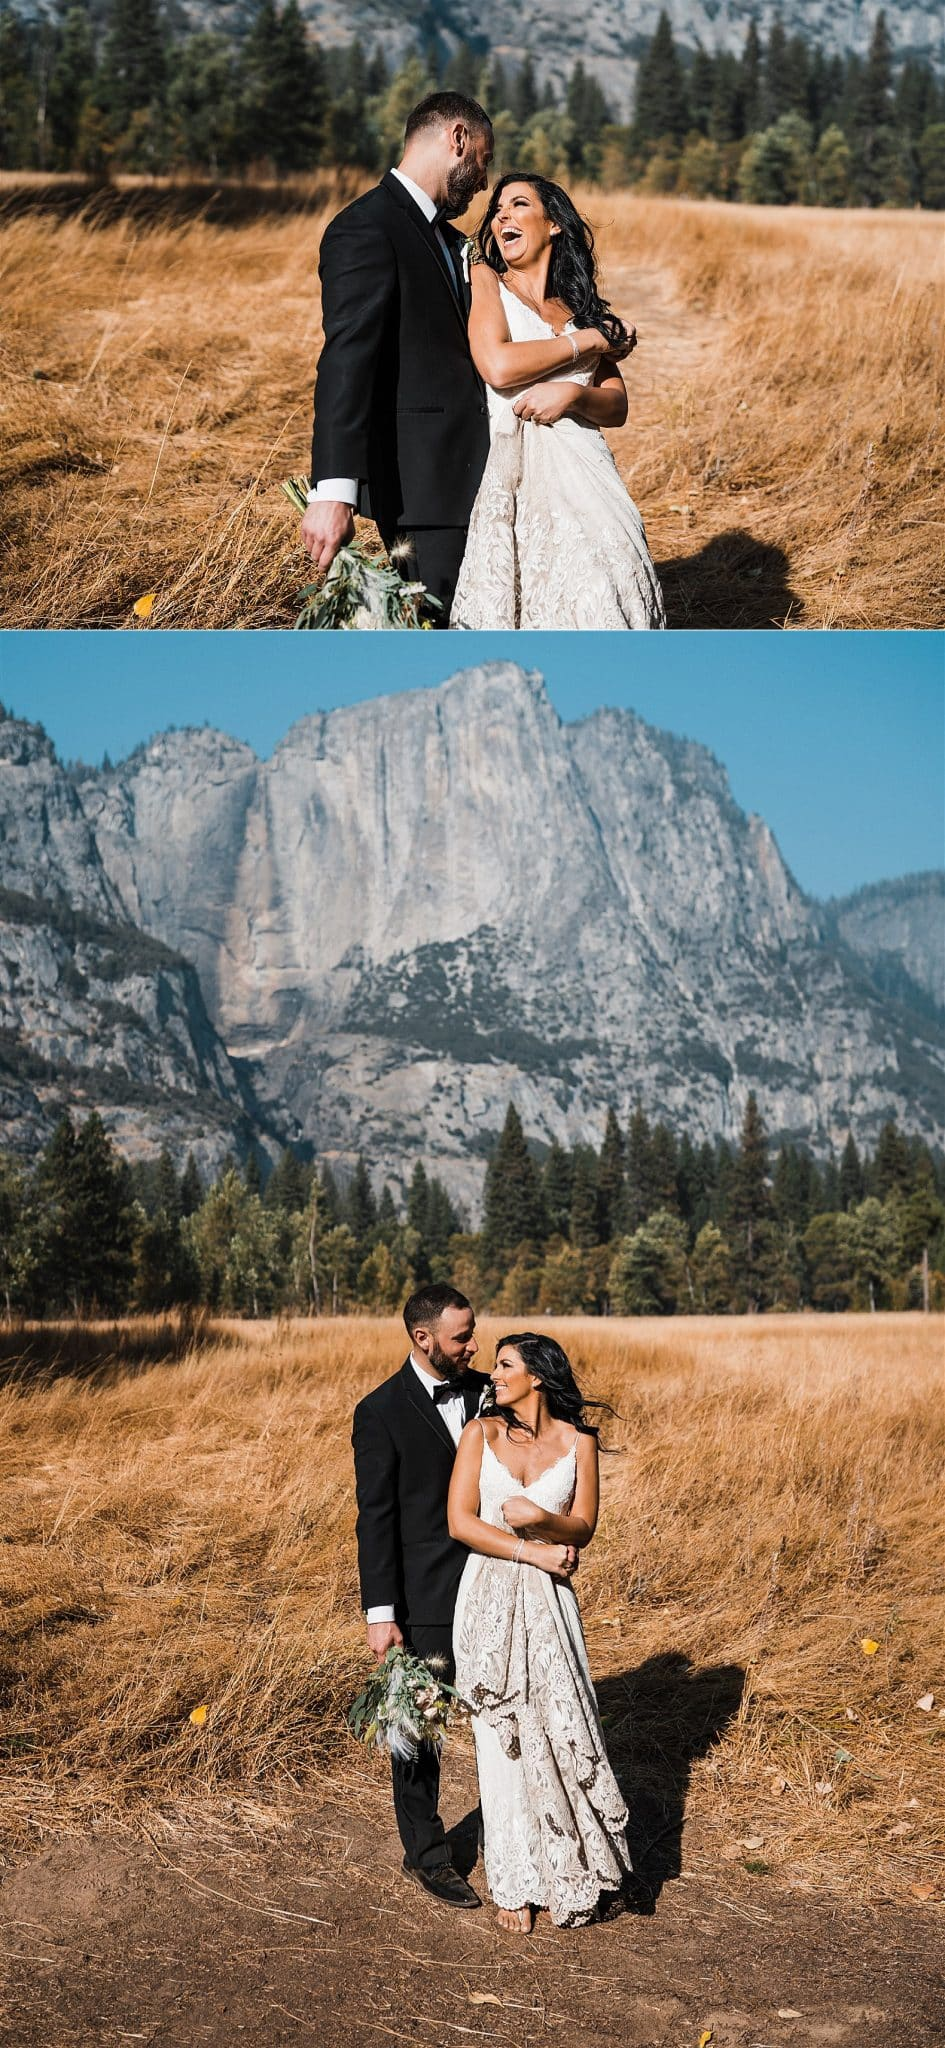 Taft_Point_Elopement_The_Foxes_Photography_0007.jpg